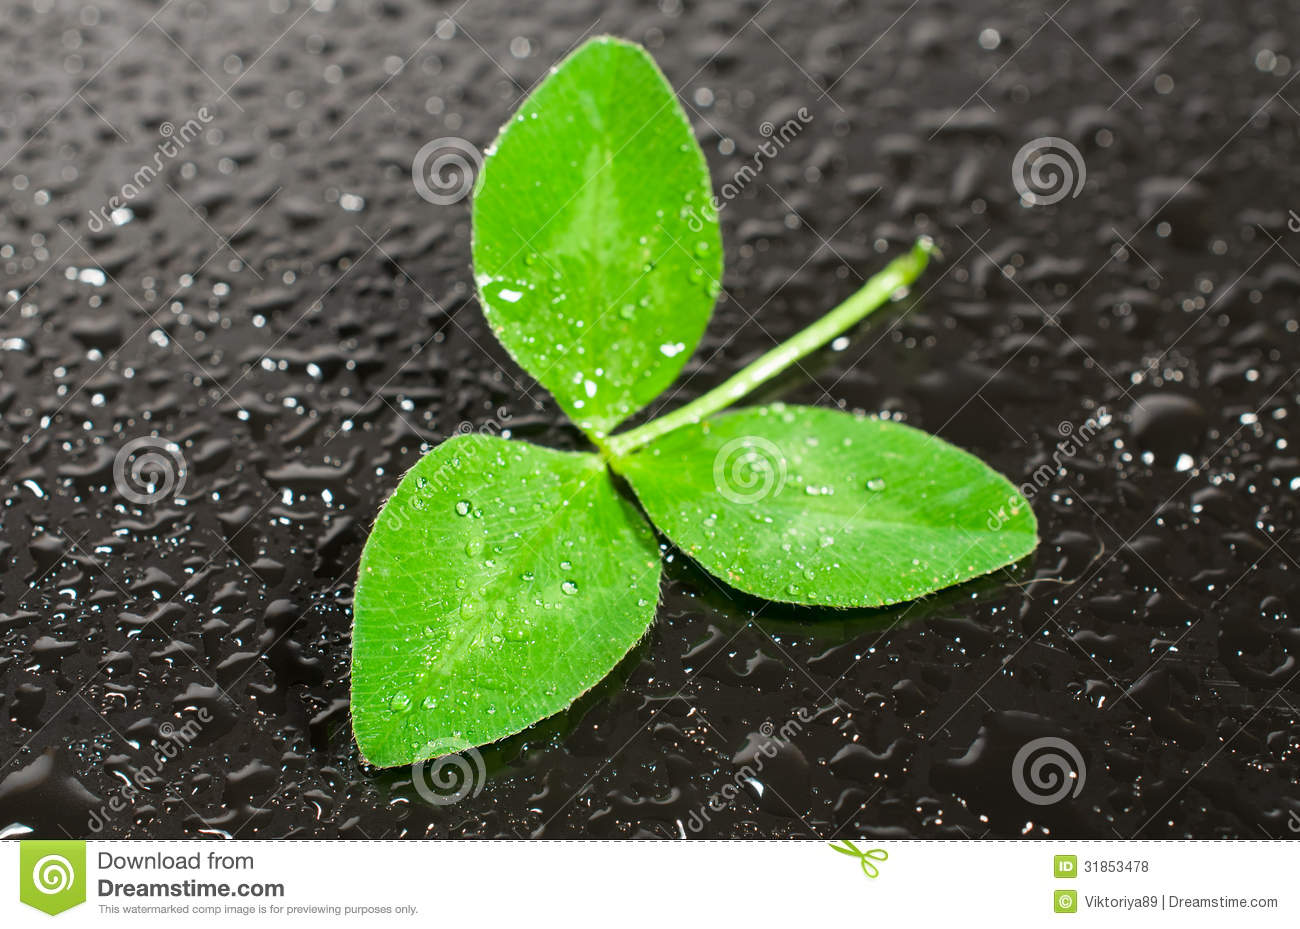 Leaf Wallpaper Wet Fall Trifoliate Leaf Clover In Drops Of Water Royalty Free